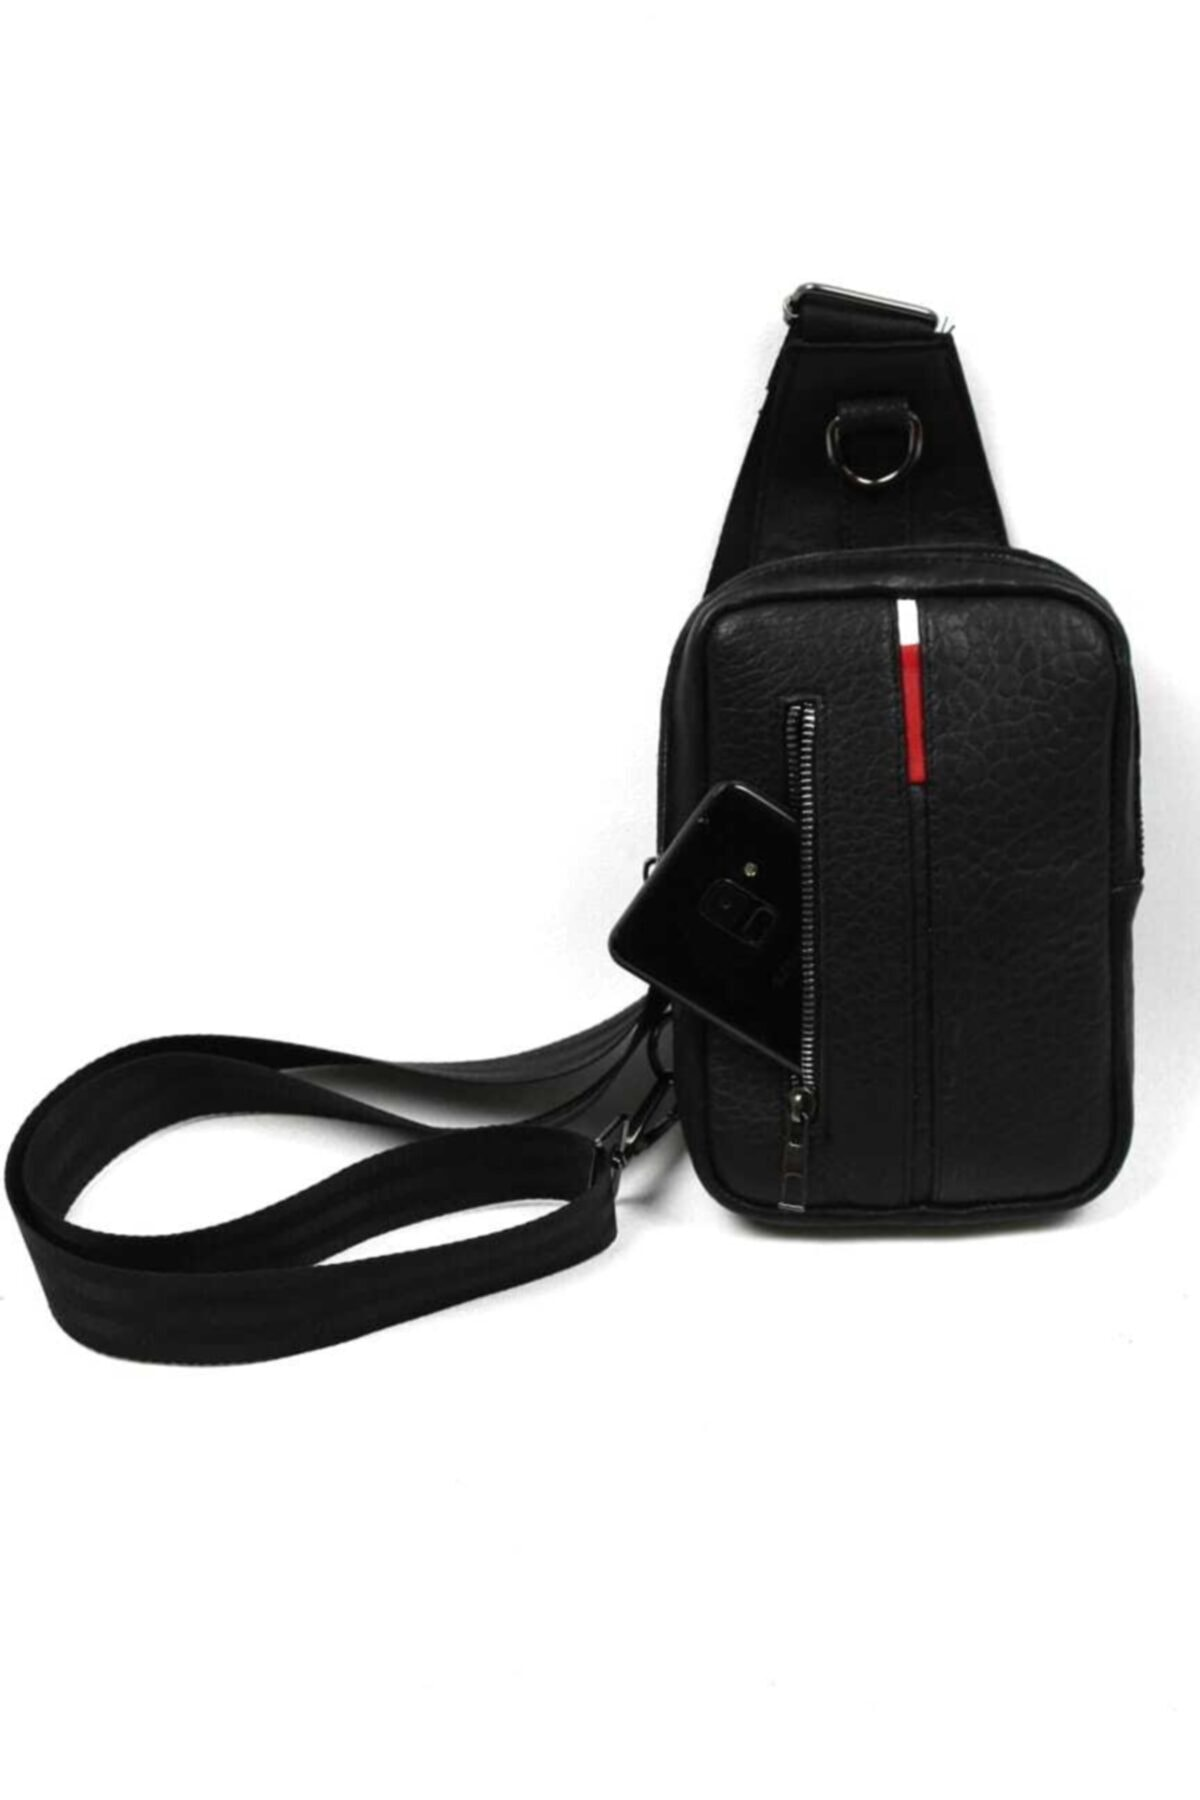 Newish Polo Deri Çapraz Çanta Cross Bodybag 1